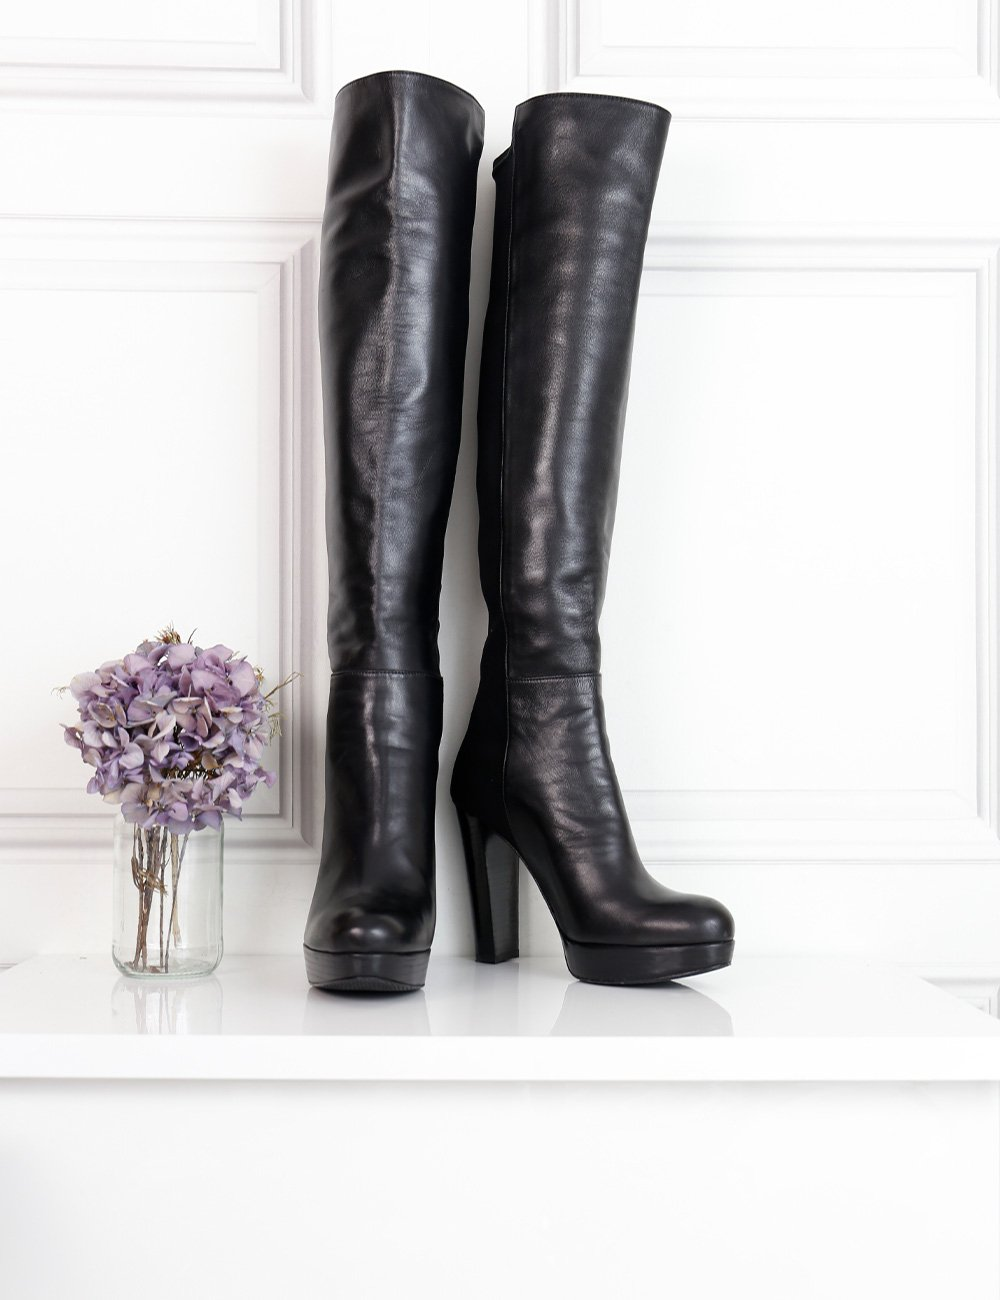 Stuart Weitzman black knee-high boots 4UK- My Wardrobe Mistakes